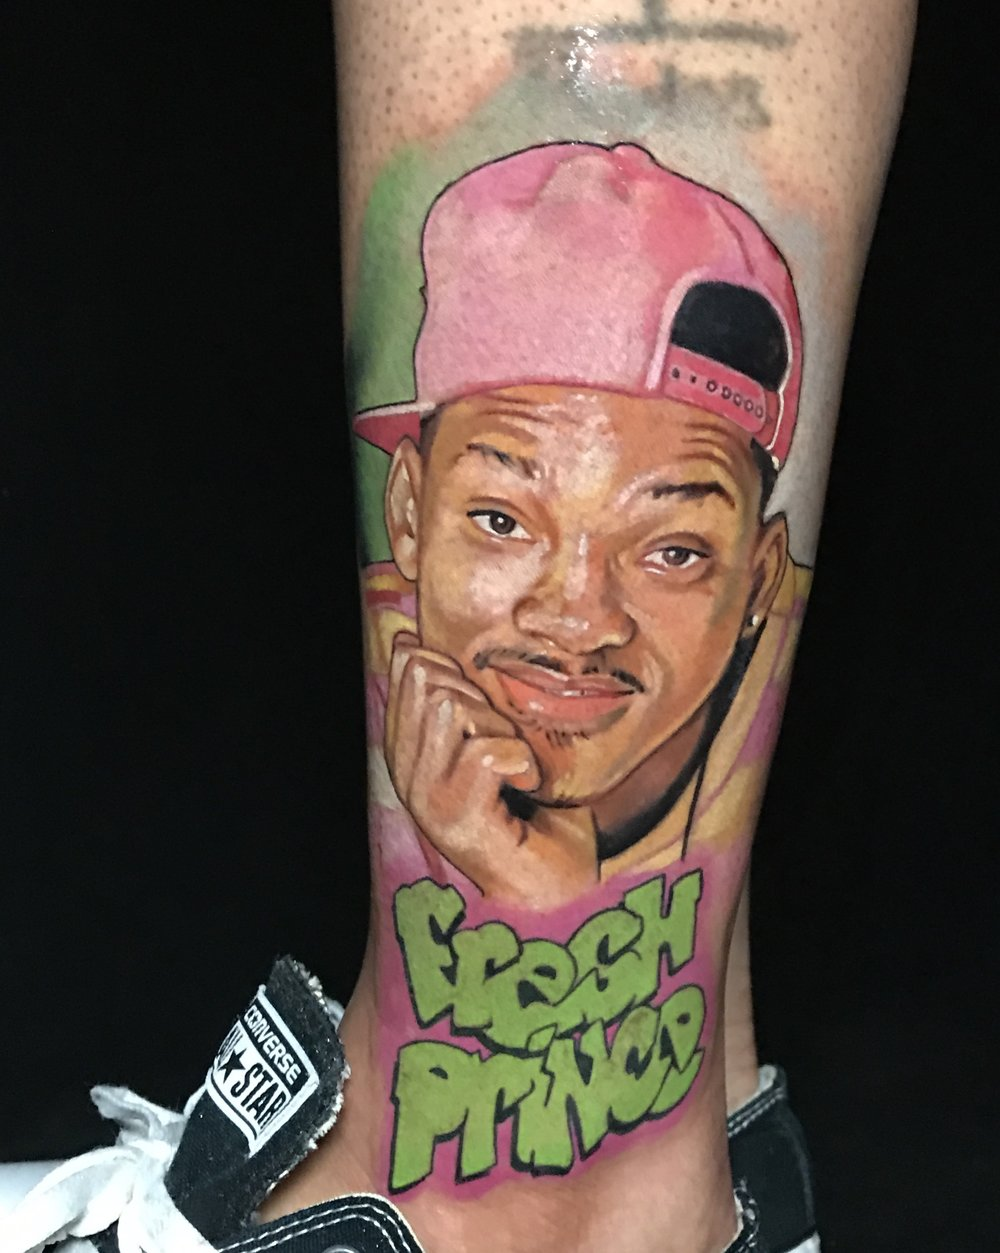 PonyLawsonFreshPrincetattoo.jpg